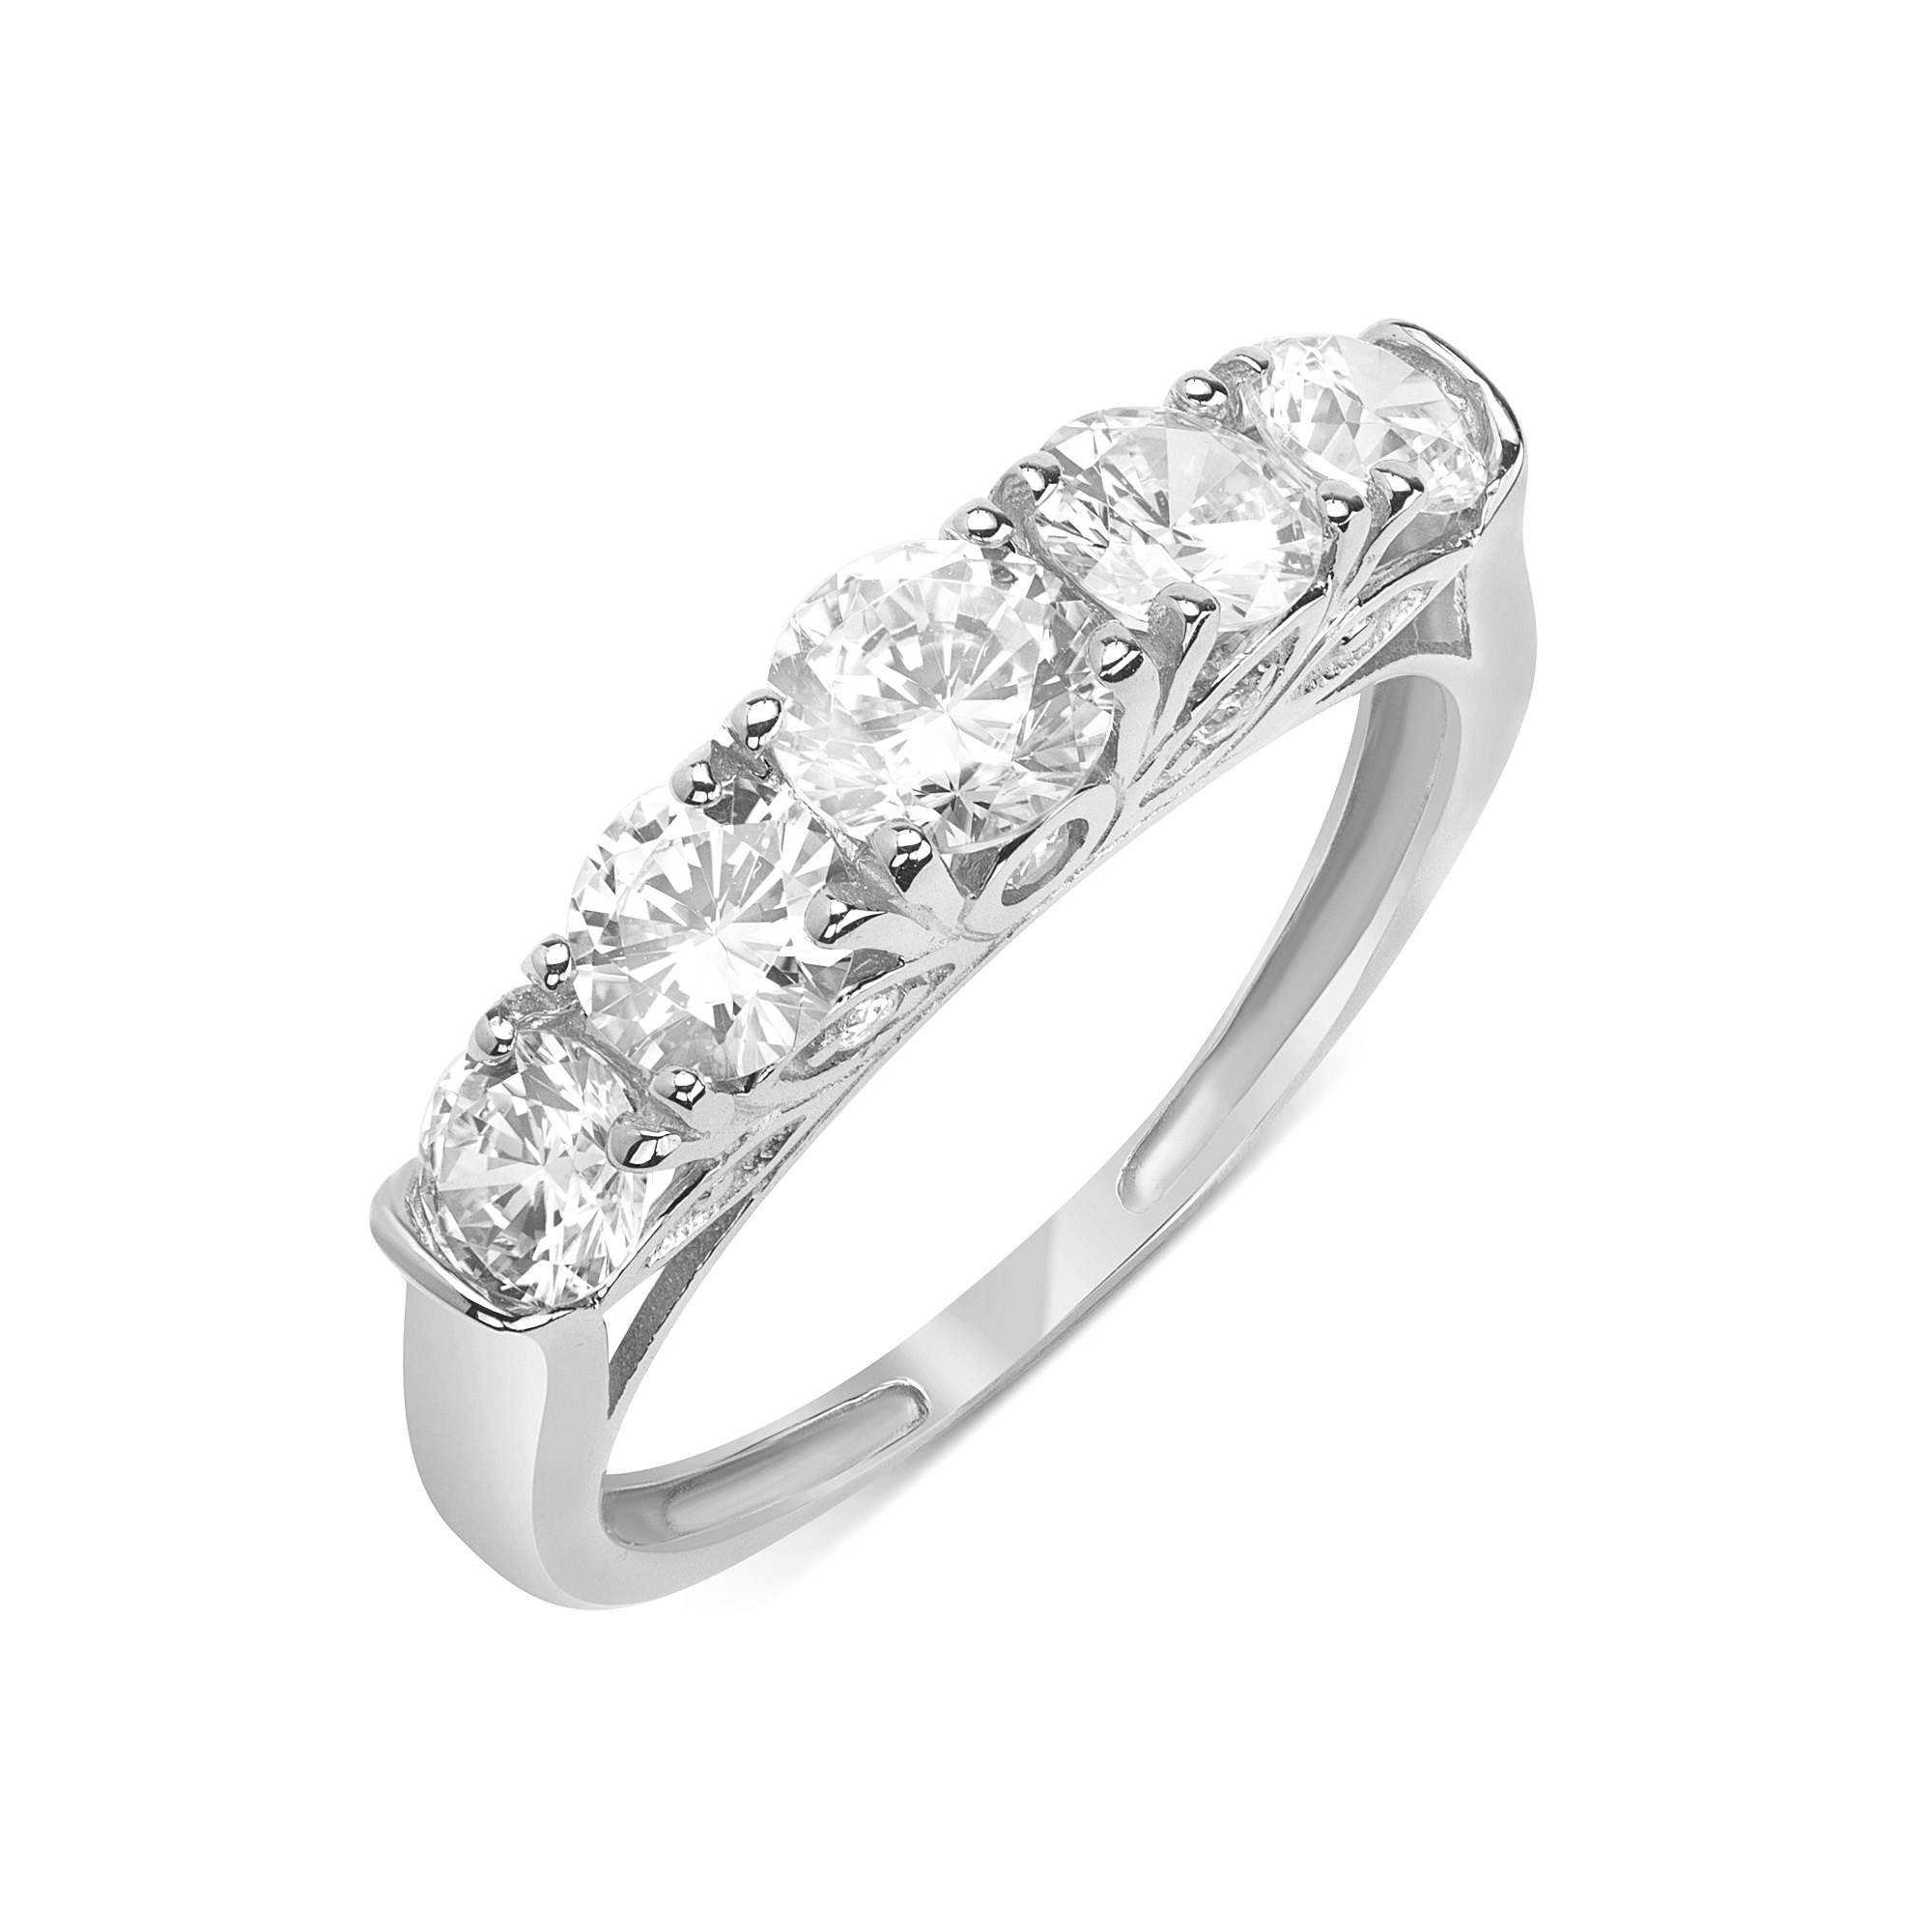 Details About 14K White Gold Wedding Ring Round  (View 15 of 25)